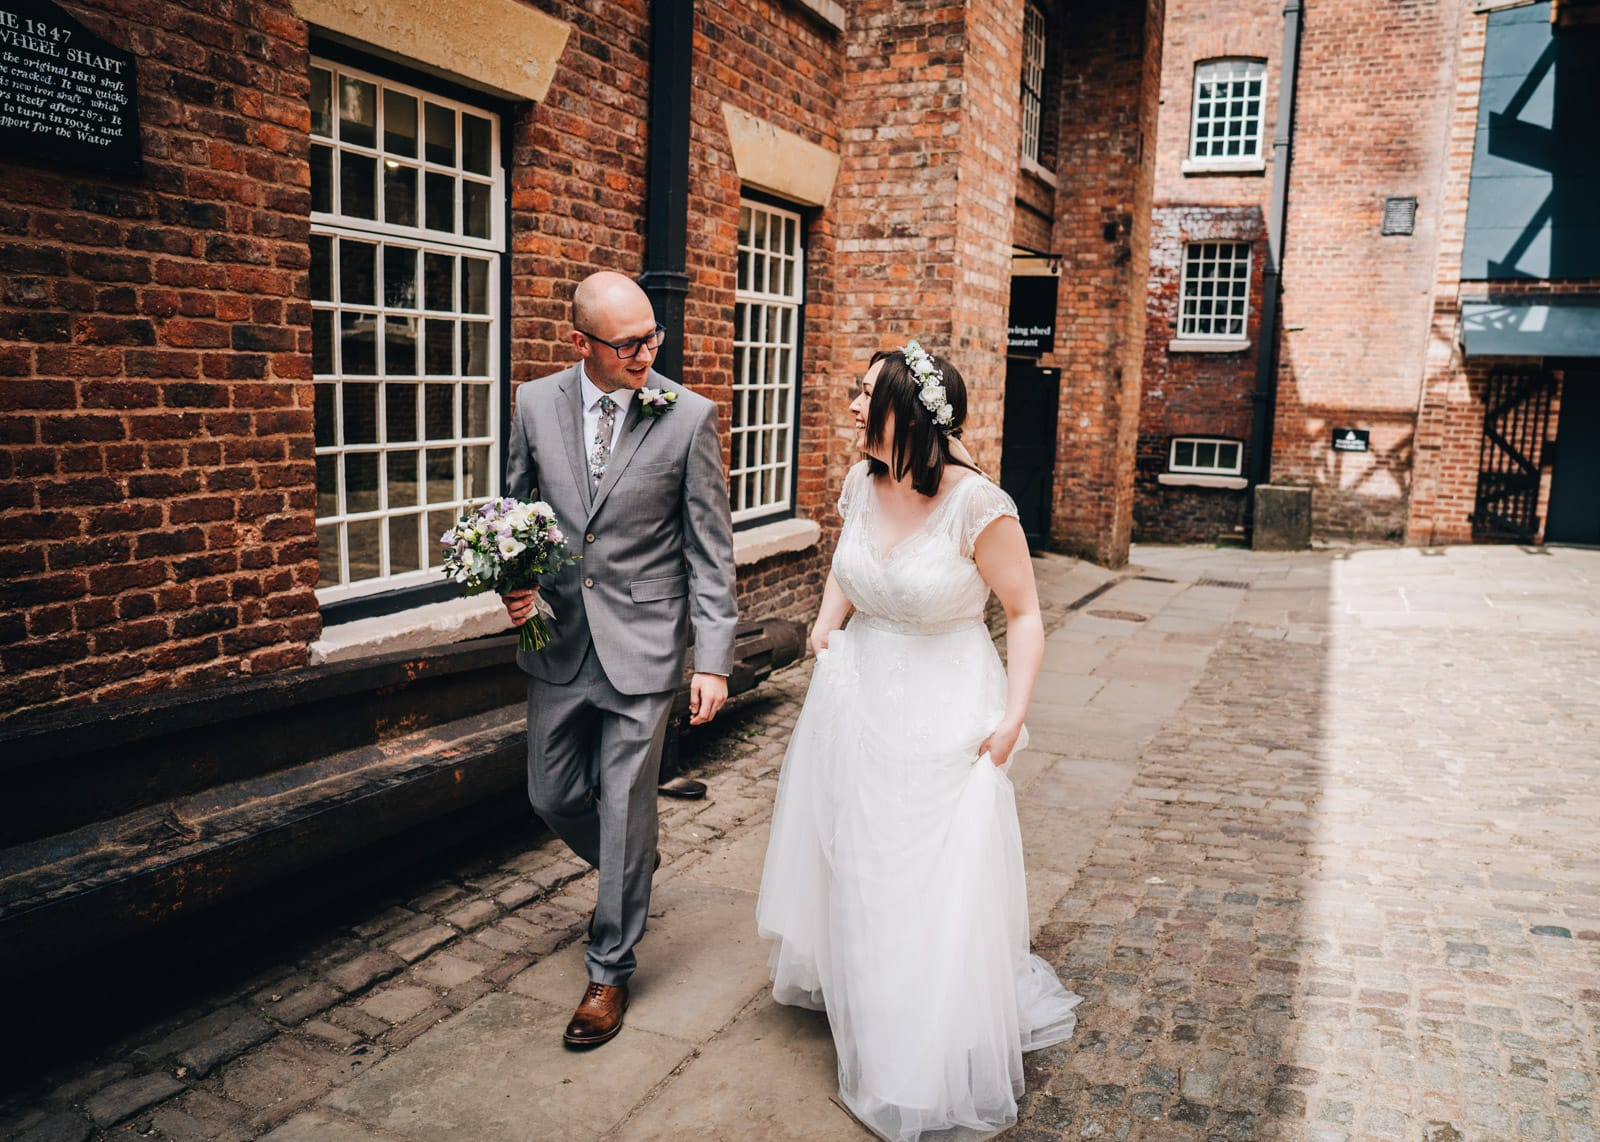 Just married! At Quarry Bank Mill